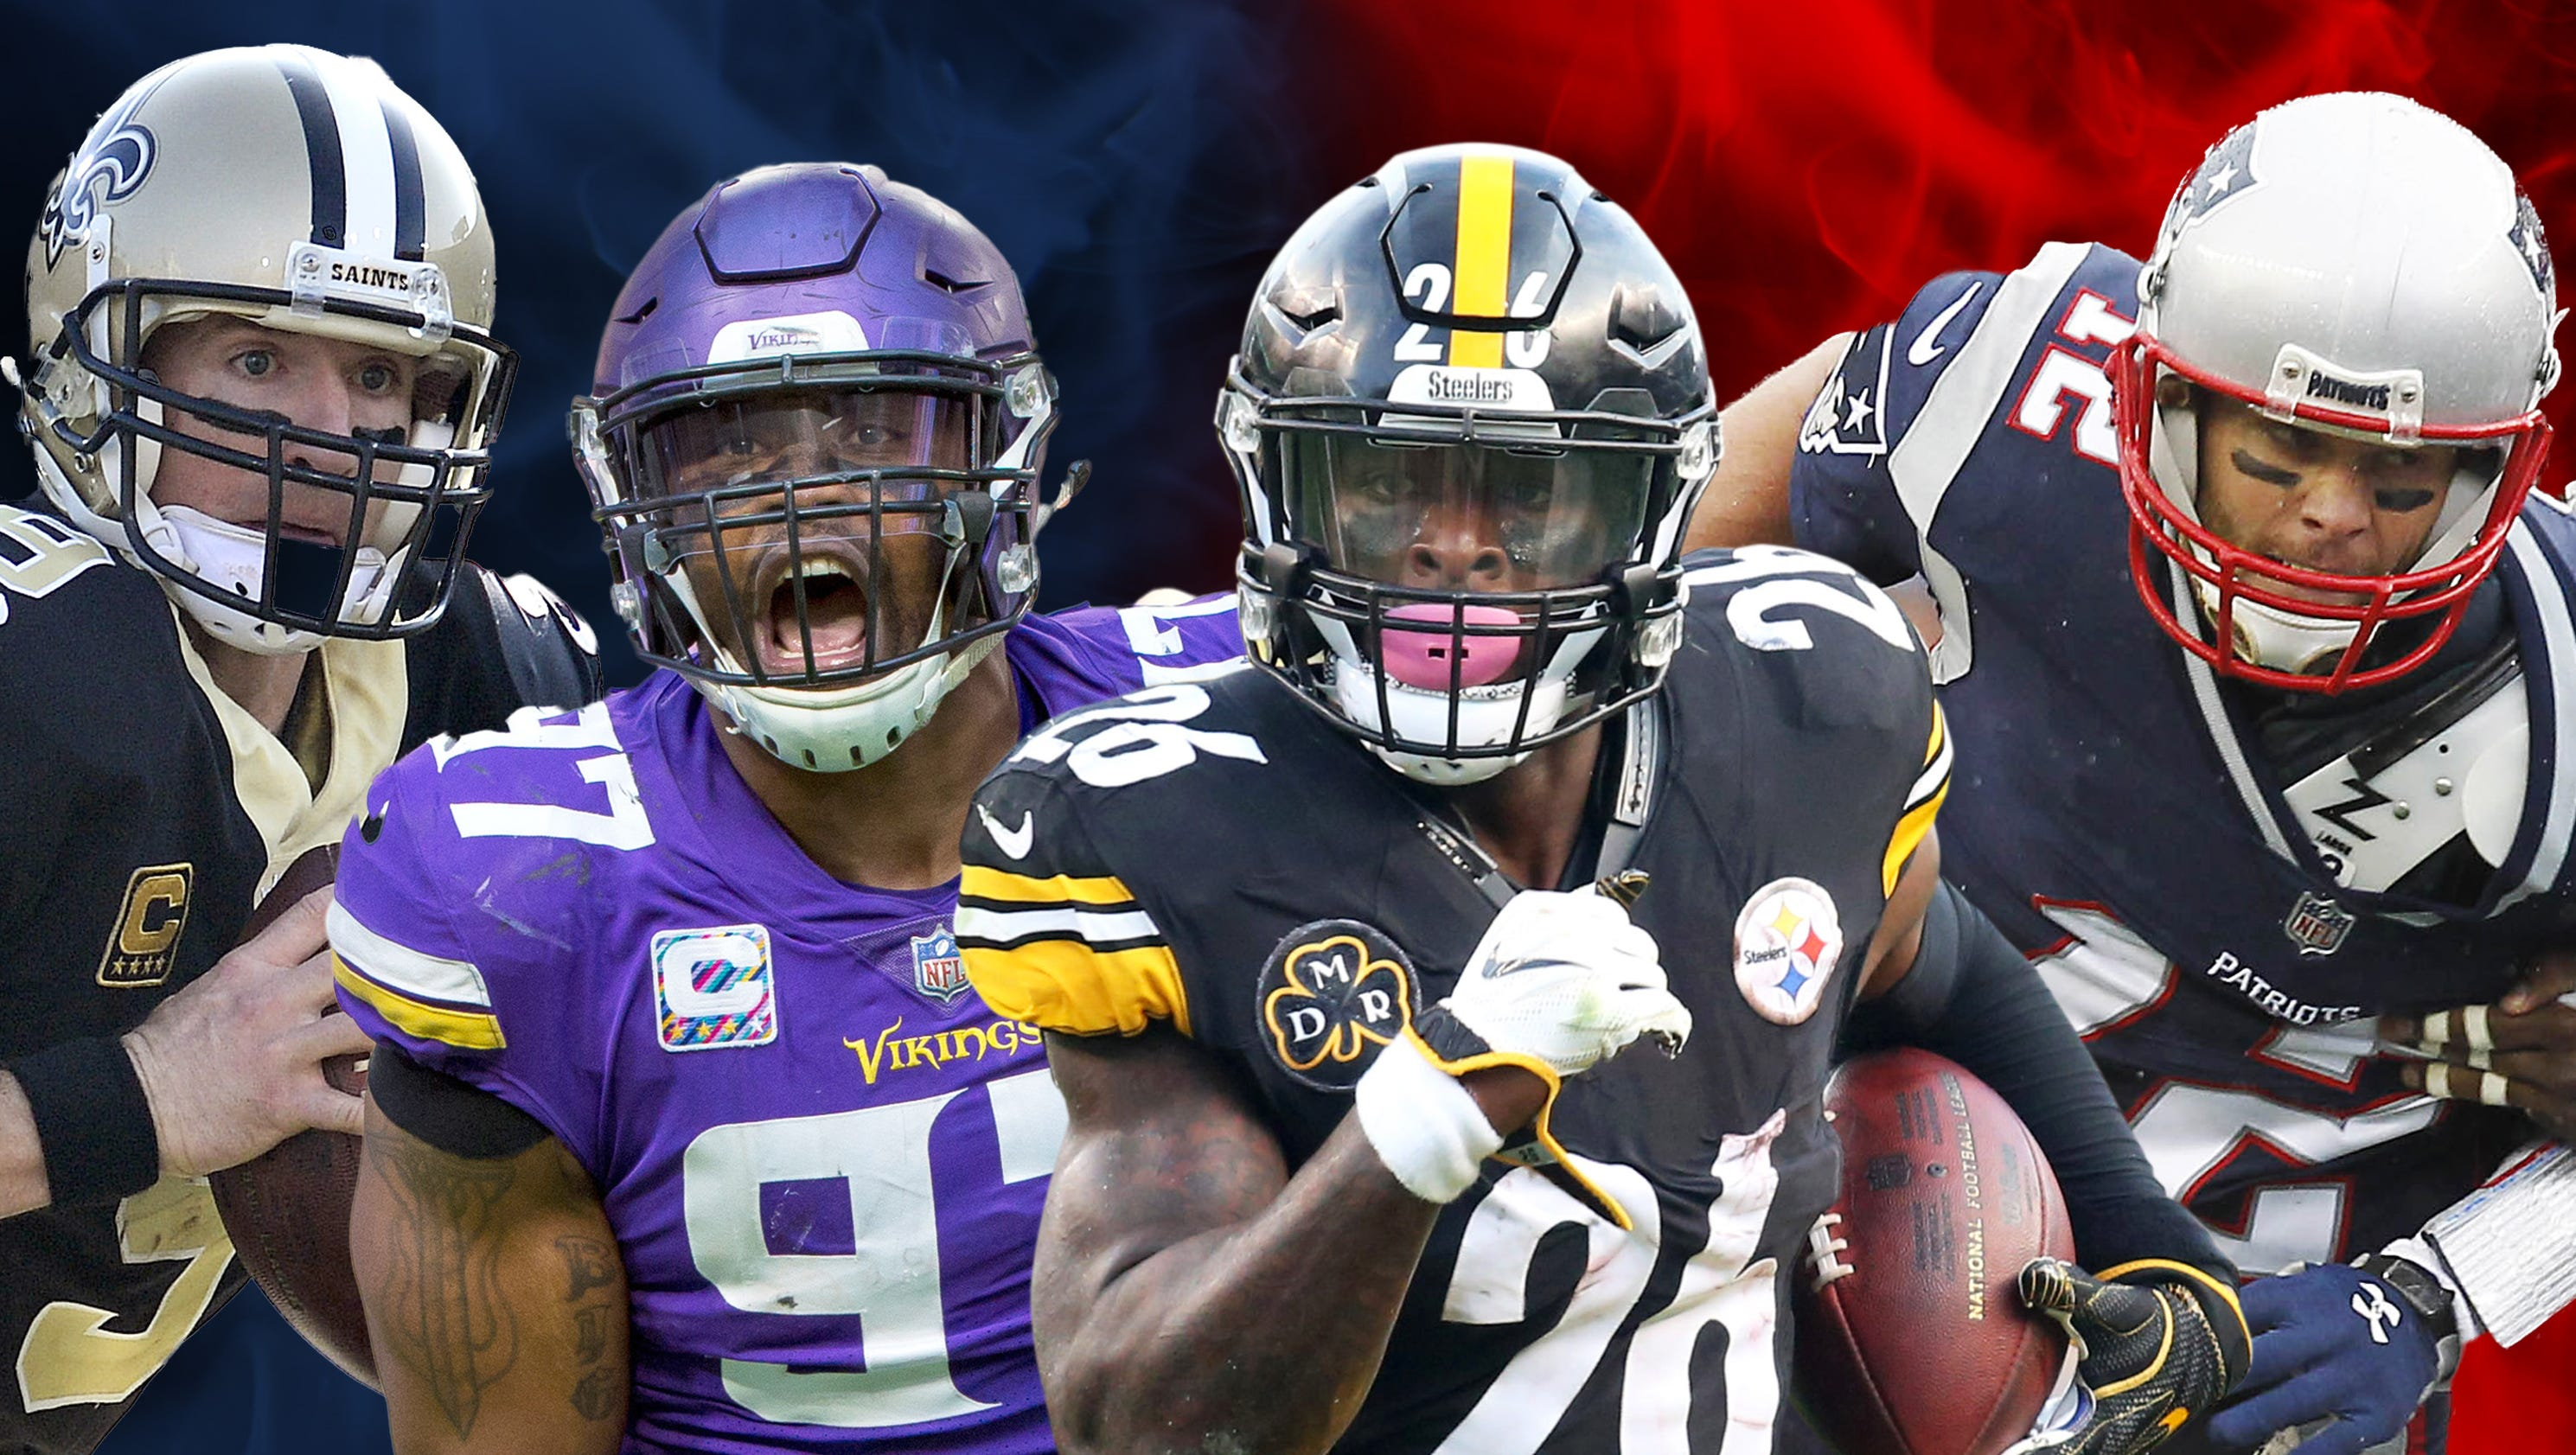 Playoffs Nfl: NFL Playoff Picture Through Week 16